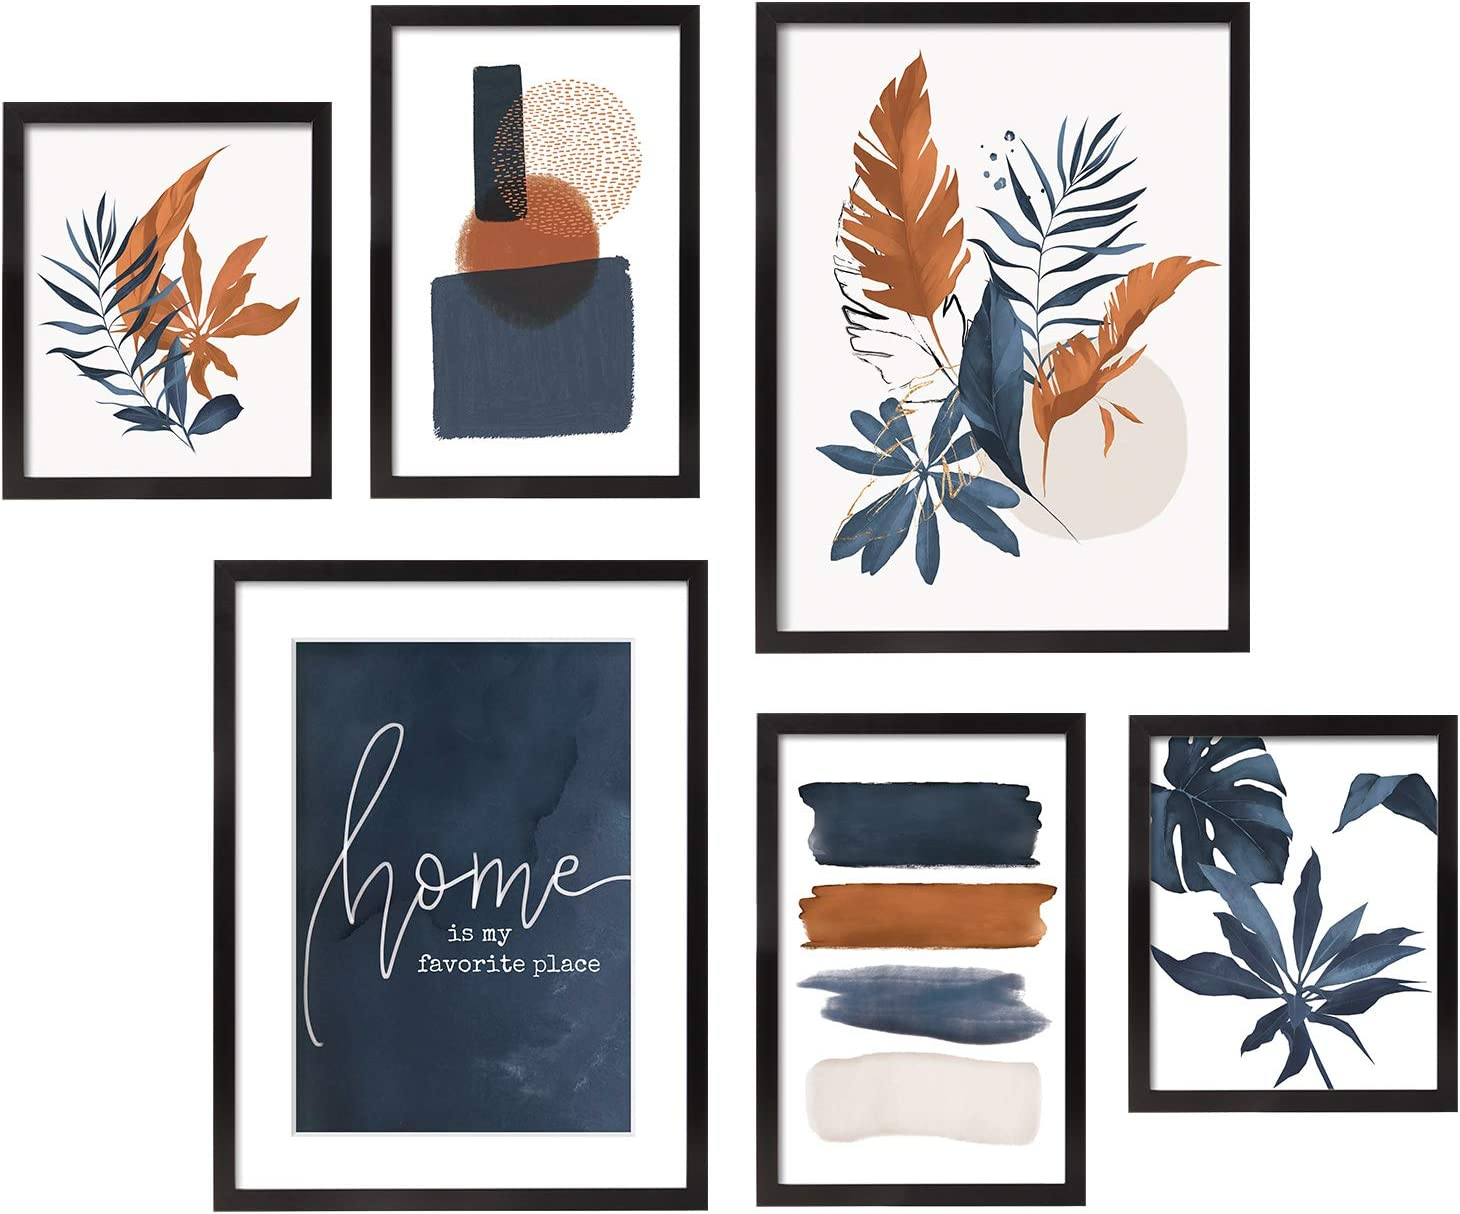 ArtbyHannah 6 Pieces Framed Botanical Gallery Wall Frames Kit with Tropical Plants Decorative Art Prints for Wall Art Decor or Home Decoration,Multi Size:12x16,8x12,8x10 Inch with Black Picture Frames